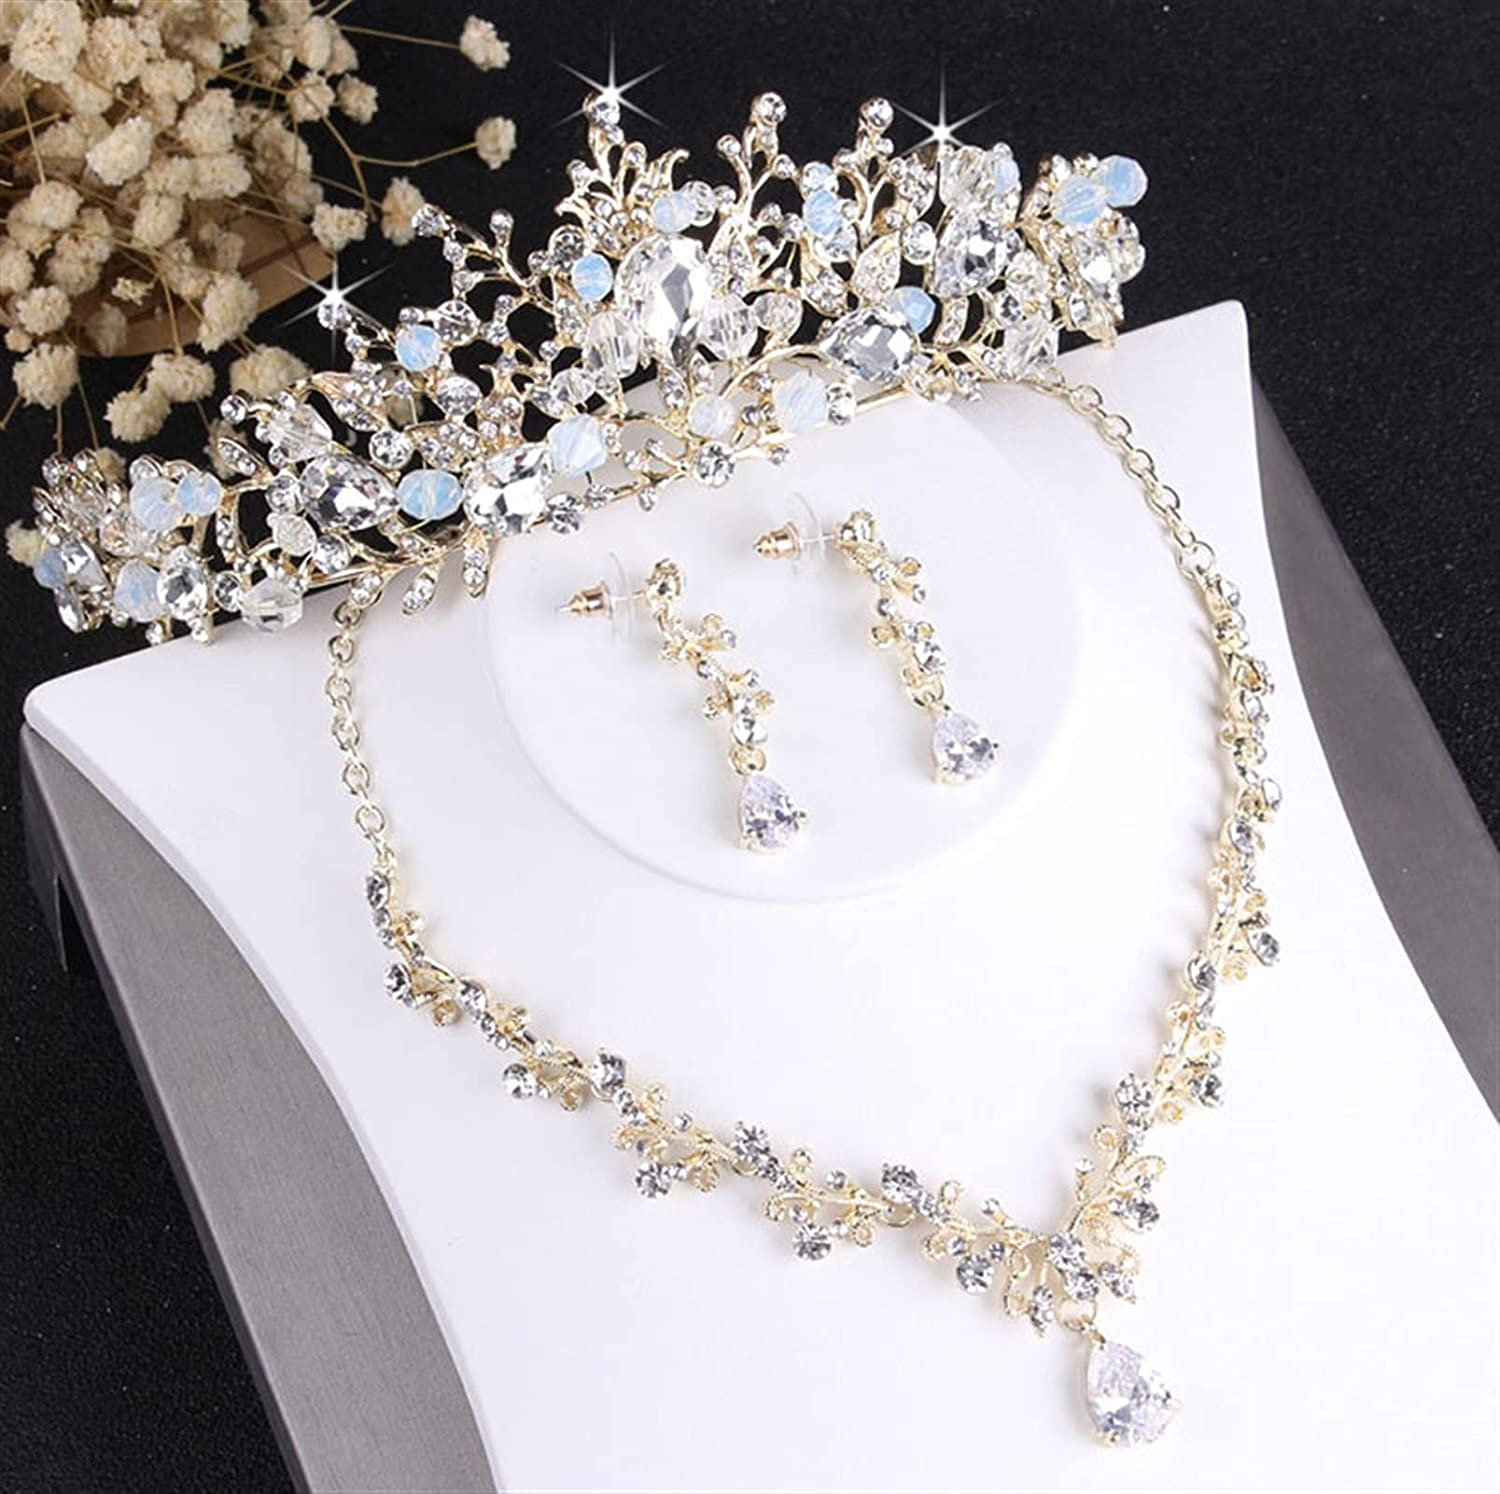 yqs Jewelry Set Crystal Bridal Jewelry Sets Vintage Gold Fashion Wedding Jewelry Tiara Necklace Earrings for Bride Hair Ornaments (Metal Color : 3Pcs Jewelry Set)